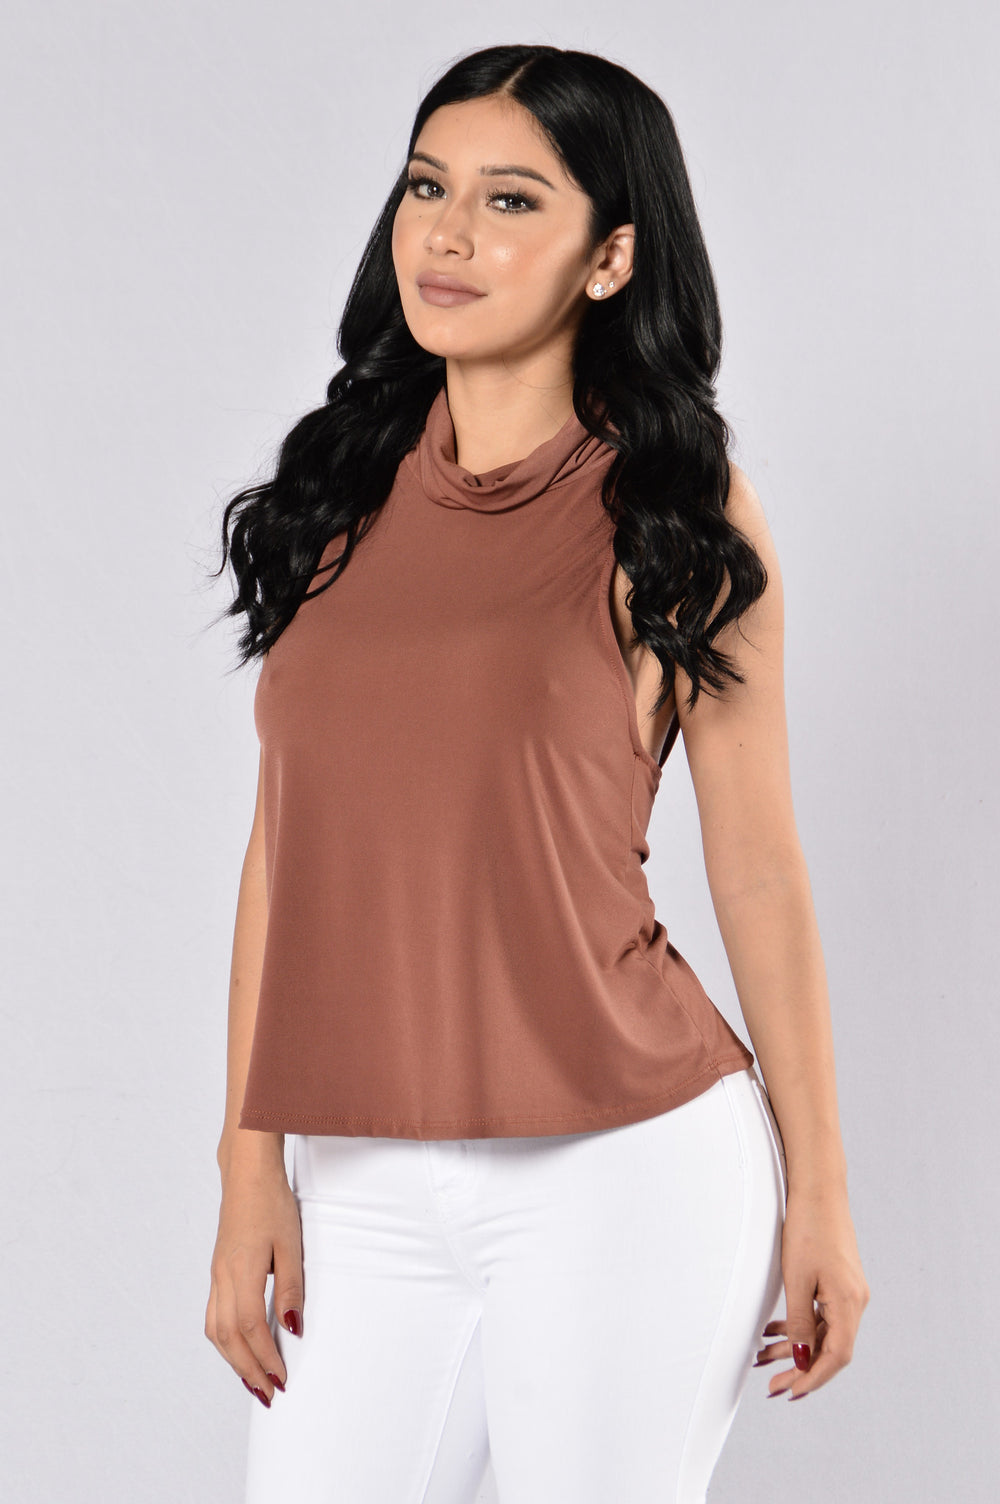 Mocking Bird Dress Top - Red/Brown